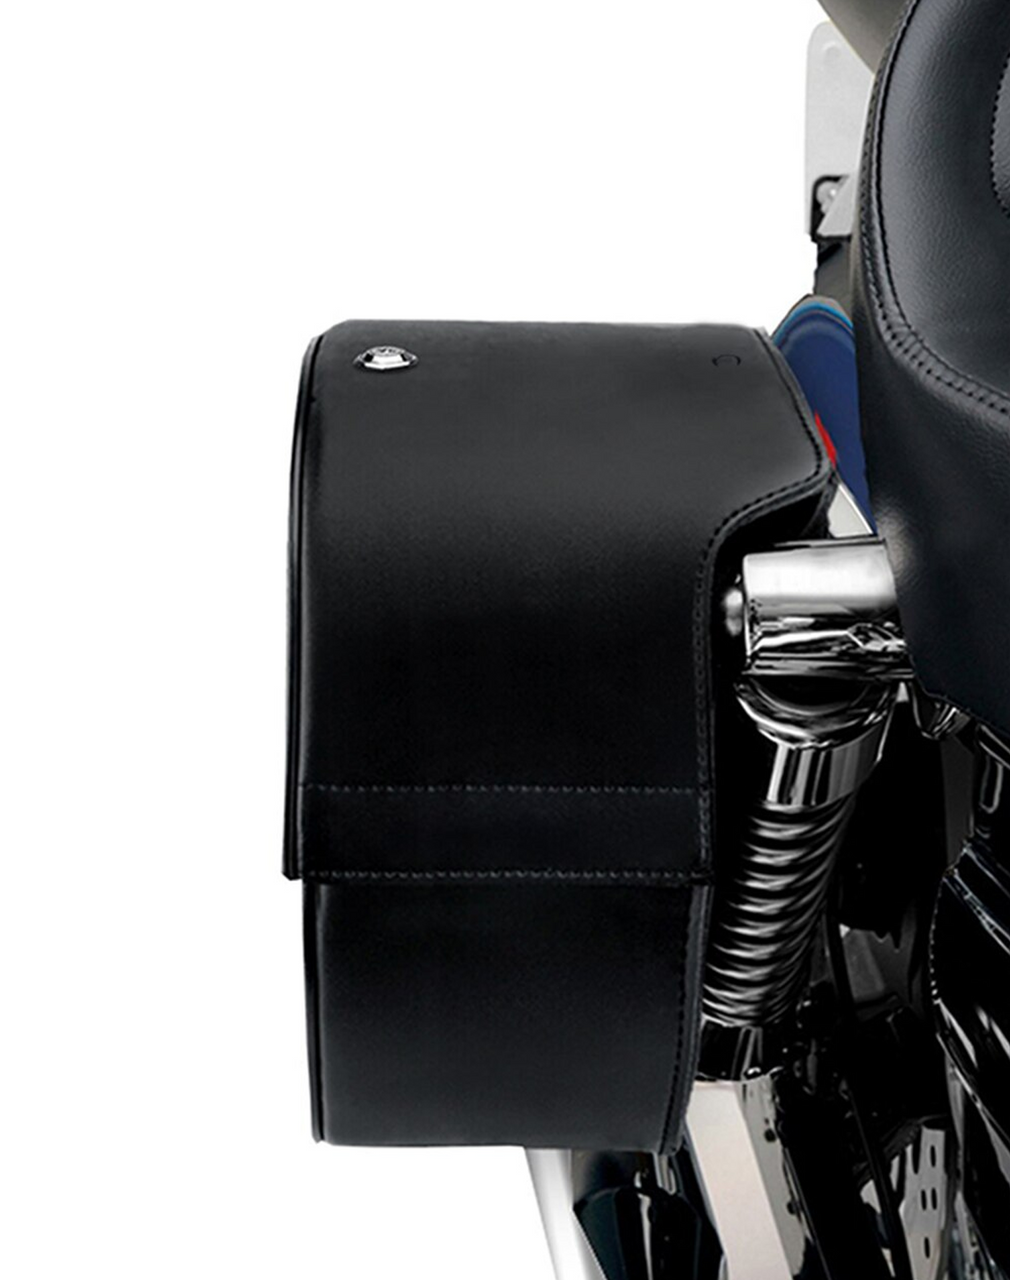 Viking Shock Cutout Warrior Slanted Large Motorcycle Saddlebags For Harley Dyna Low Rider FXDL Shock Cutout View